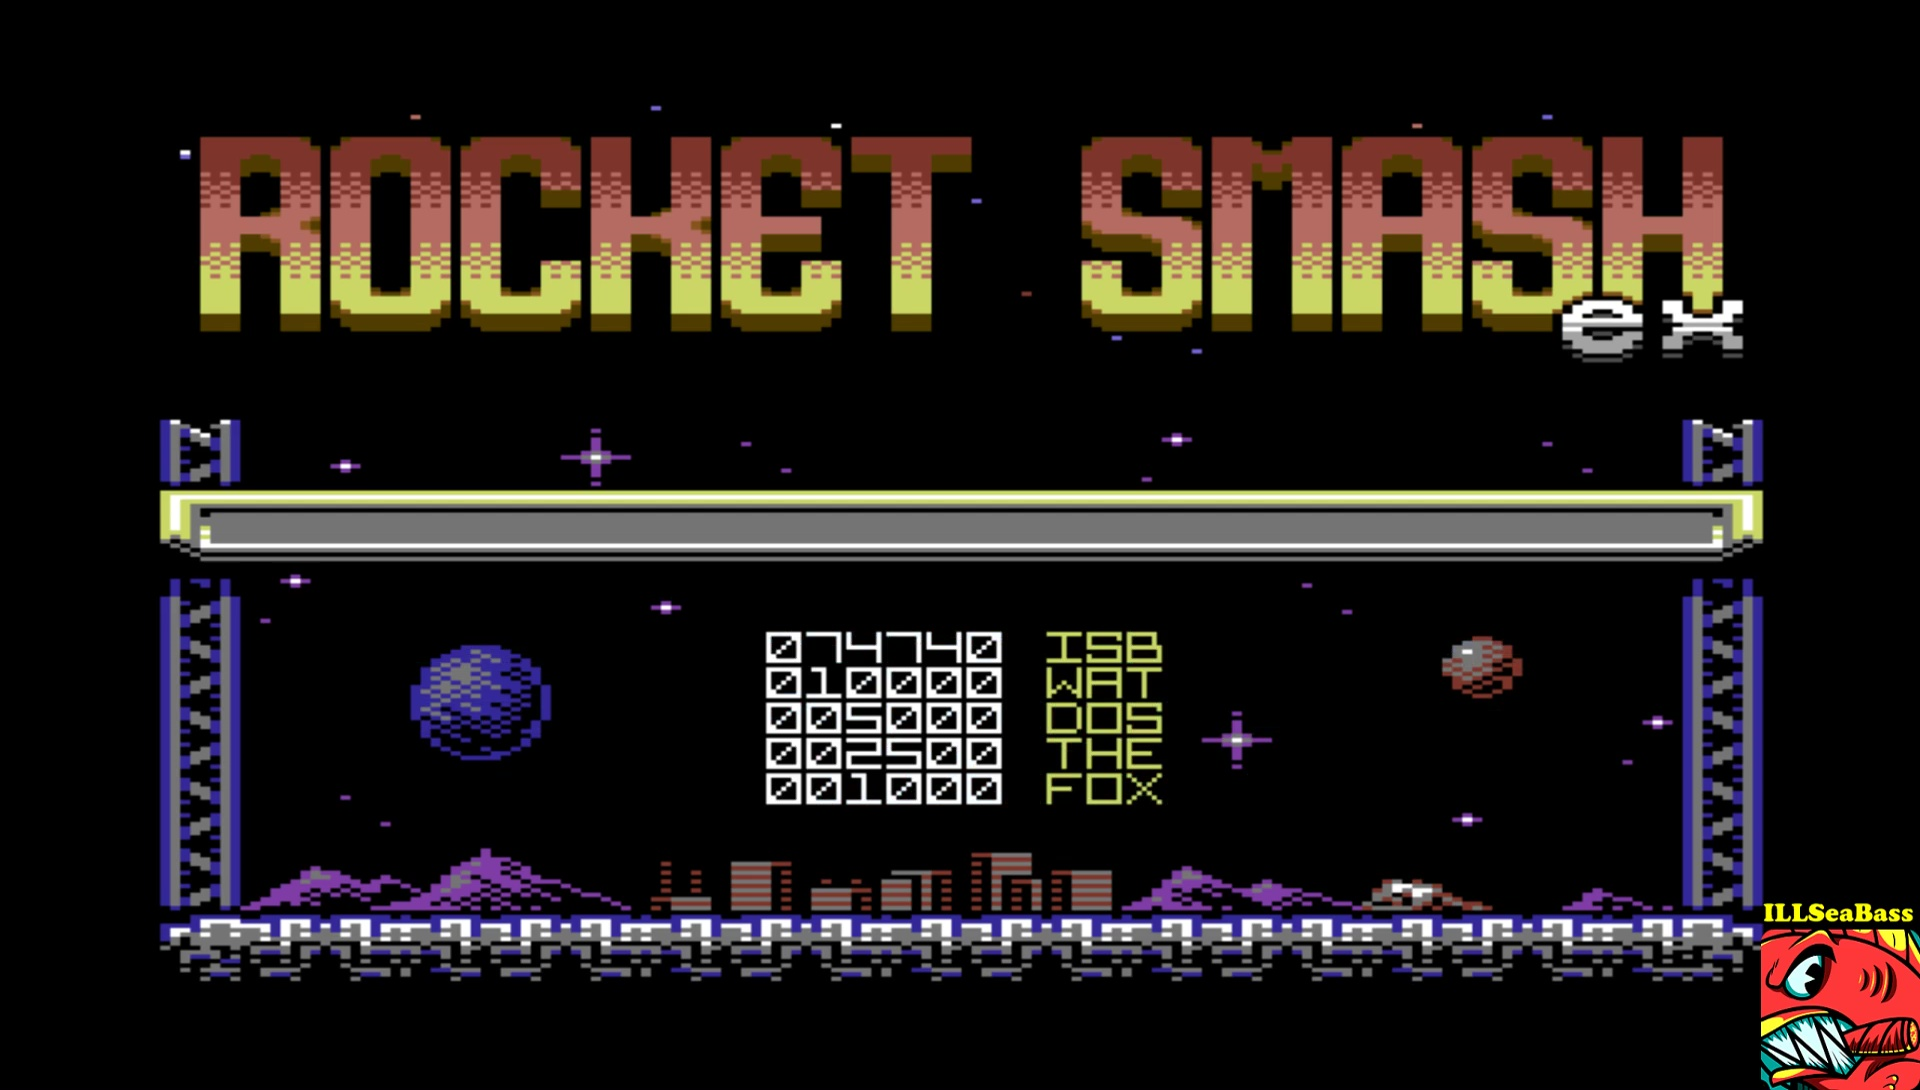 ILLSeaBass: Rocket Smash EX [Loop: Easy] (Commodore 64 Emulated) 74,740 points on 2017-04-15 22:37:18